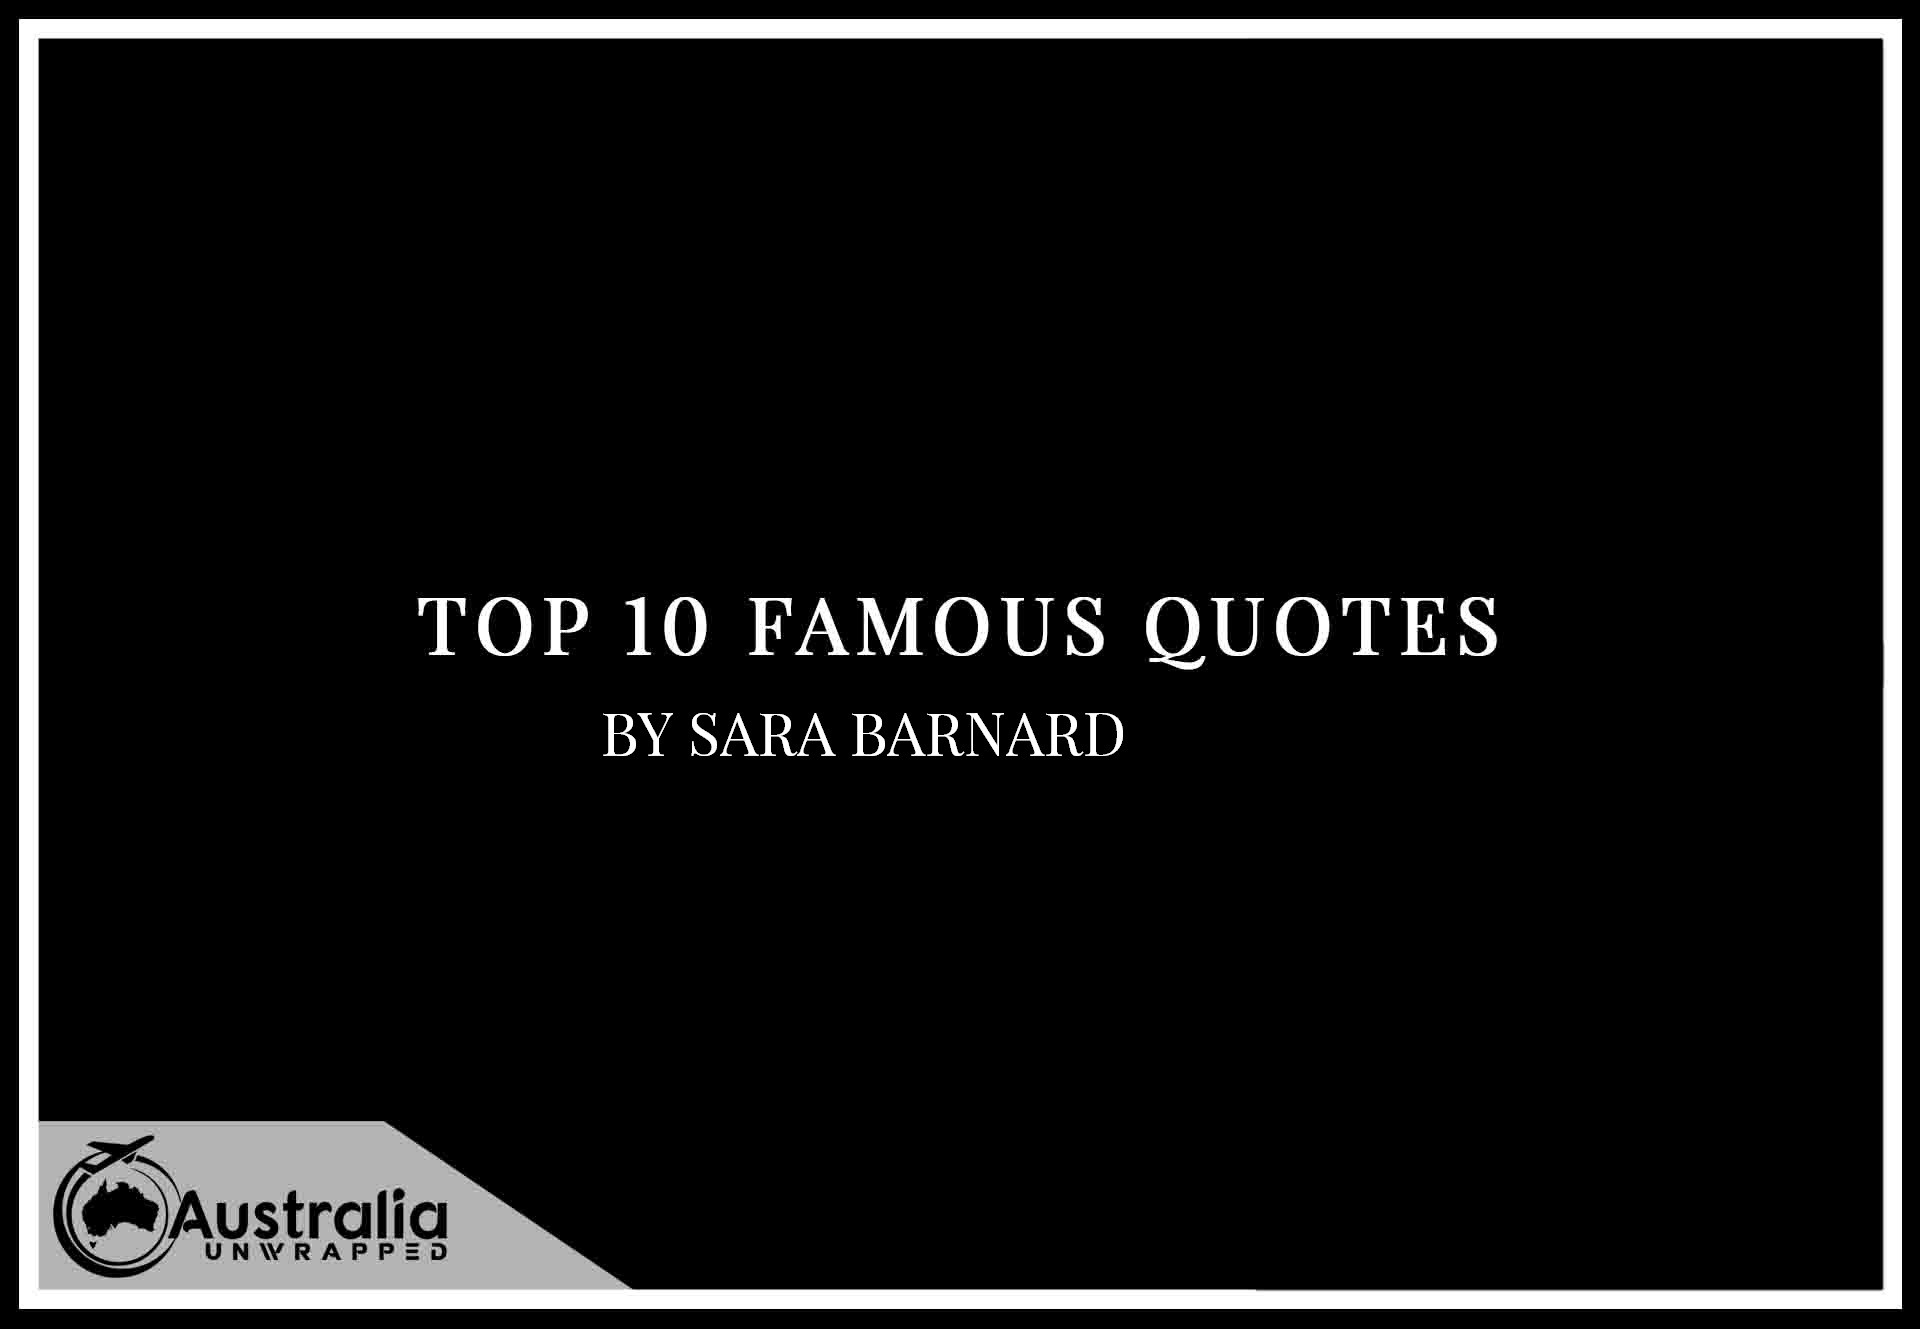 Top 10 Famous Quotes by Author Sara Barnard